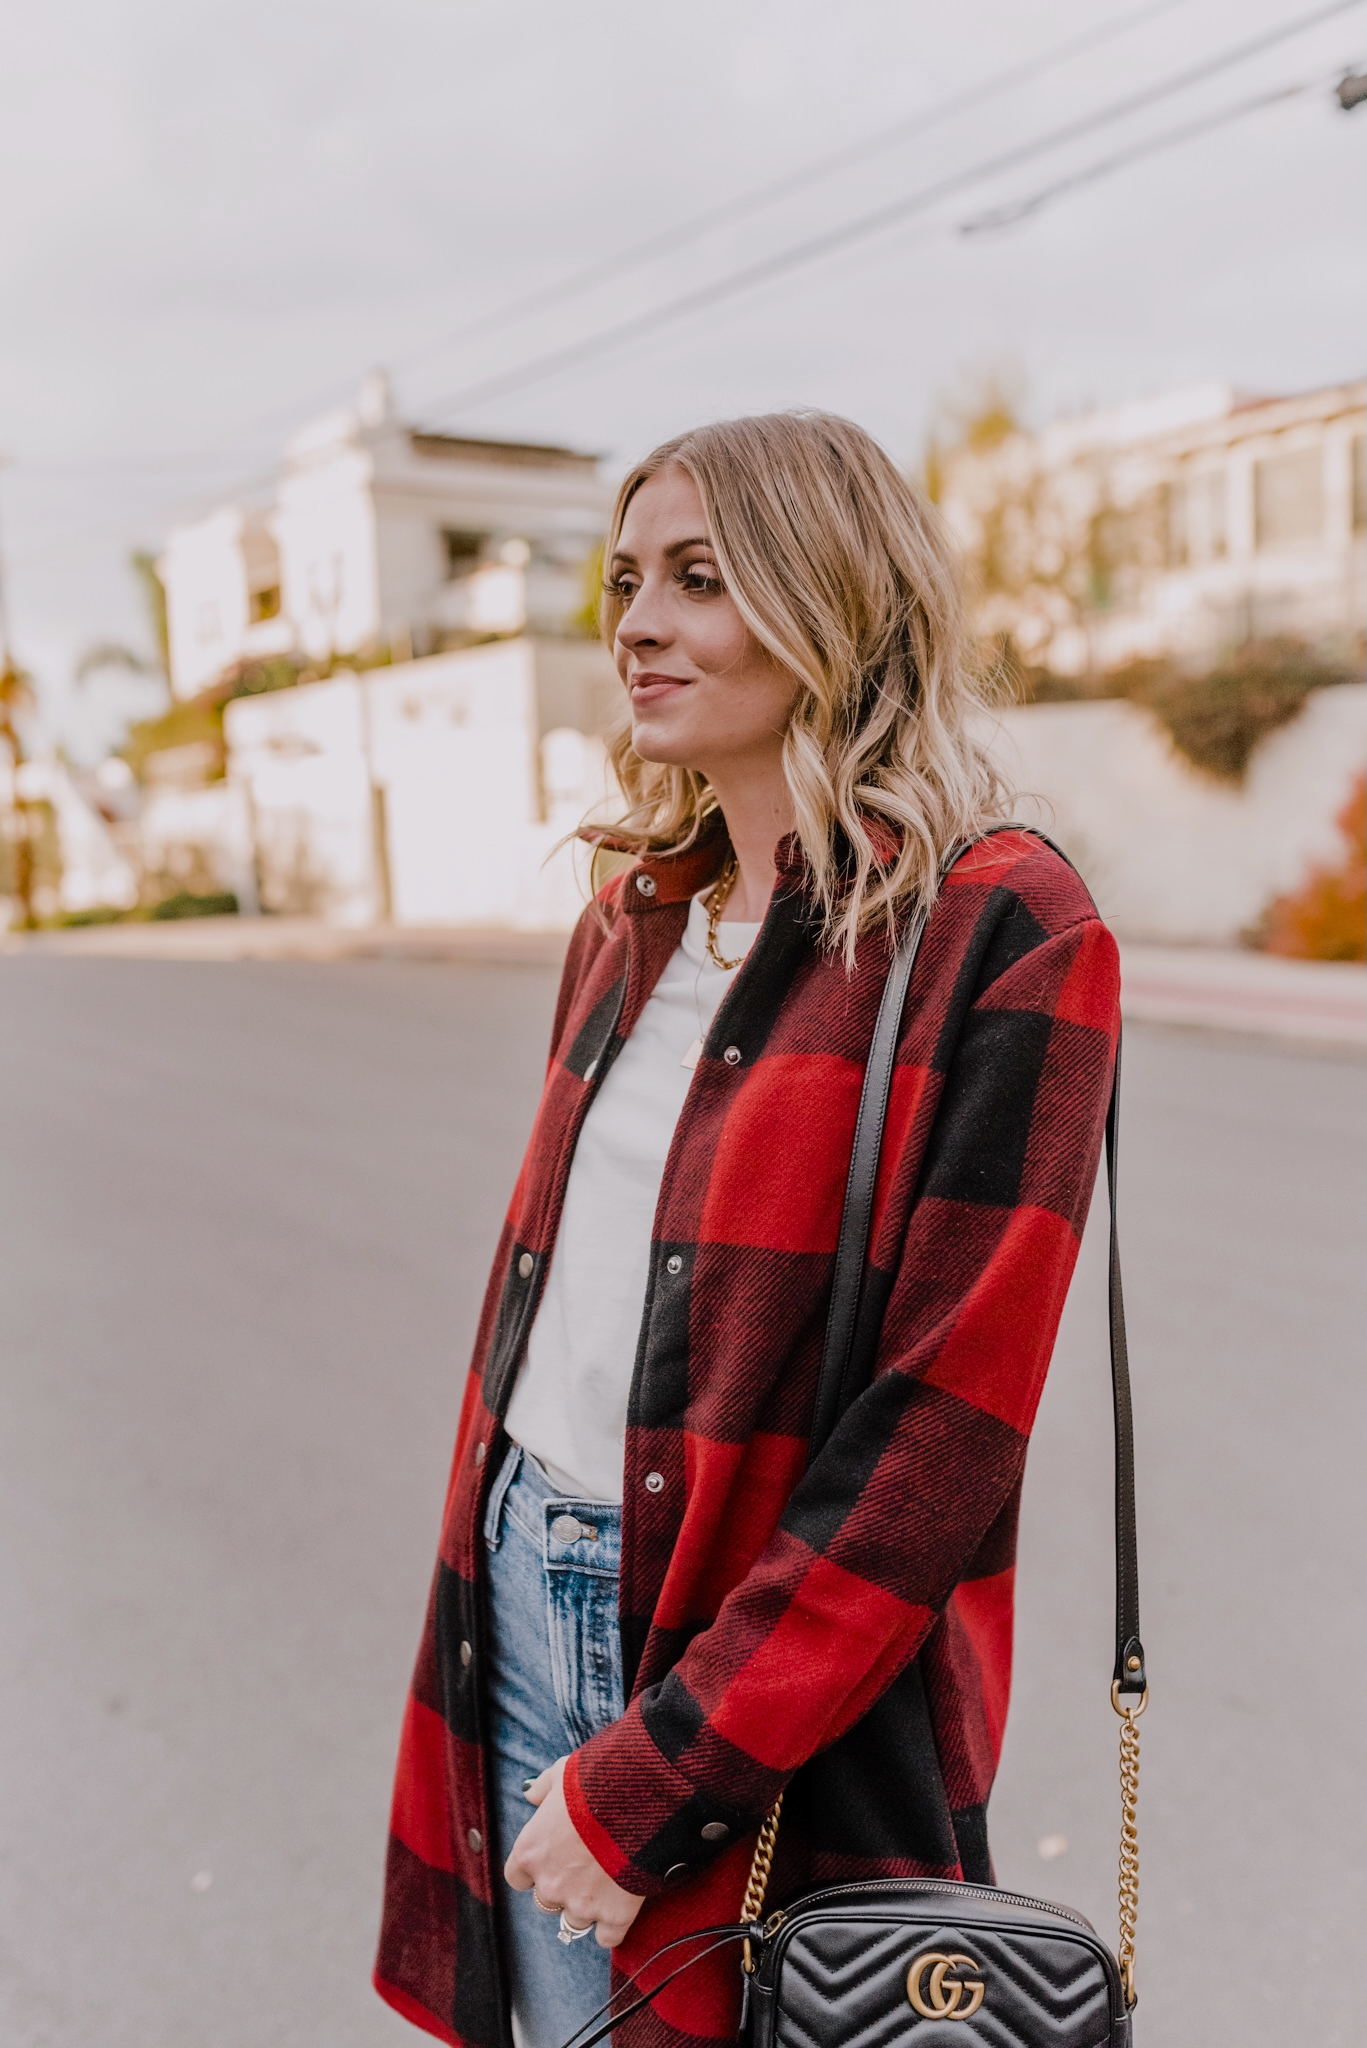 10 coats and jackets |  Winter Jackets by popular San Diego fashion blog, Navy Grace: image of Camilla Thurman wearing a Red Plaid Coat, BB Dakota bb, Madewell Denim, Lug Sole Boots, and carrying a Gucci handbag.